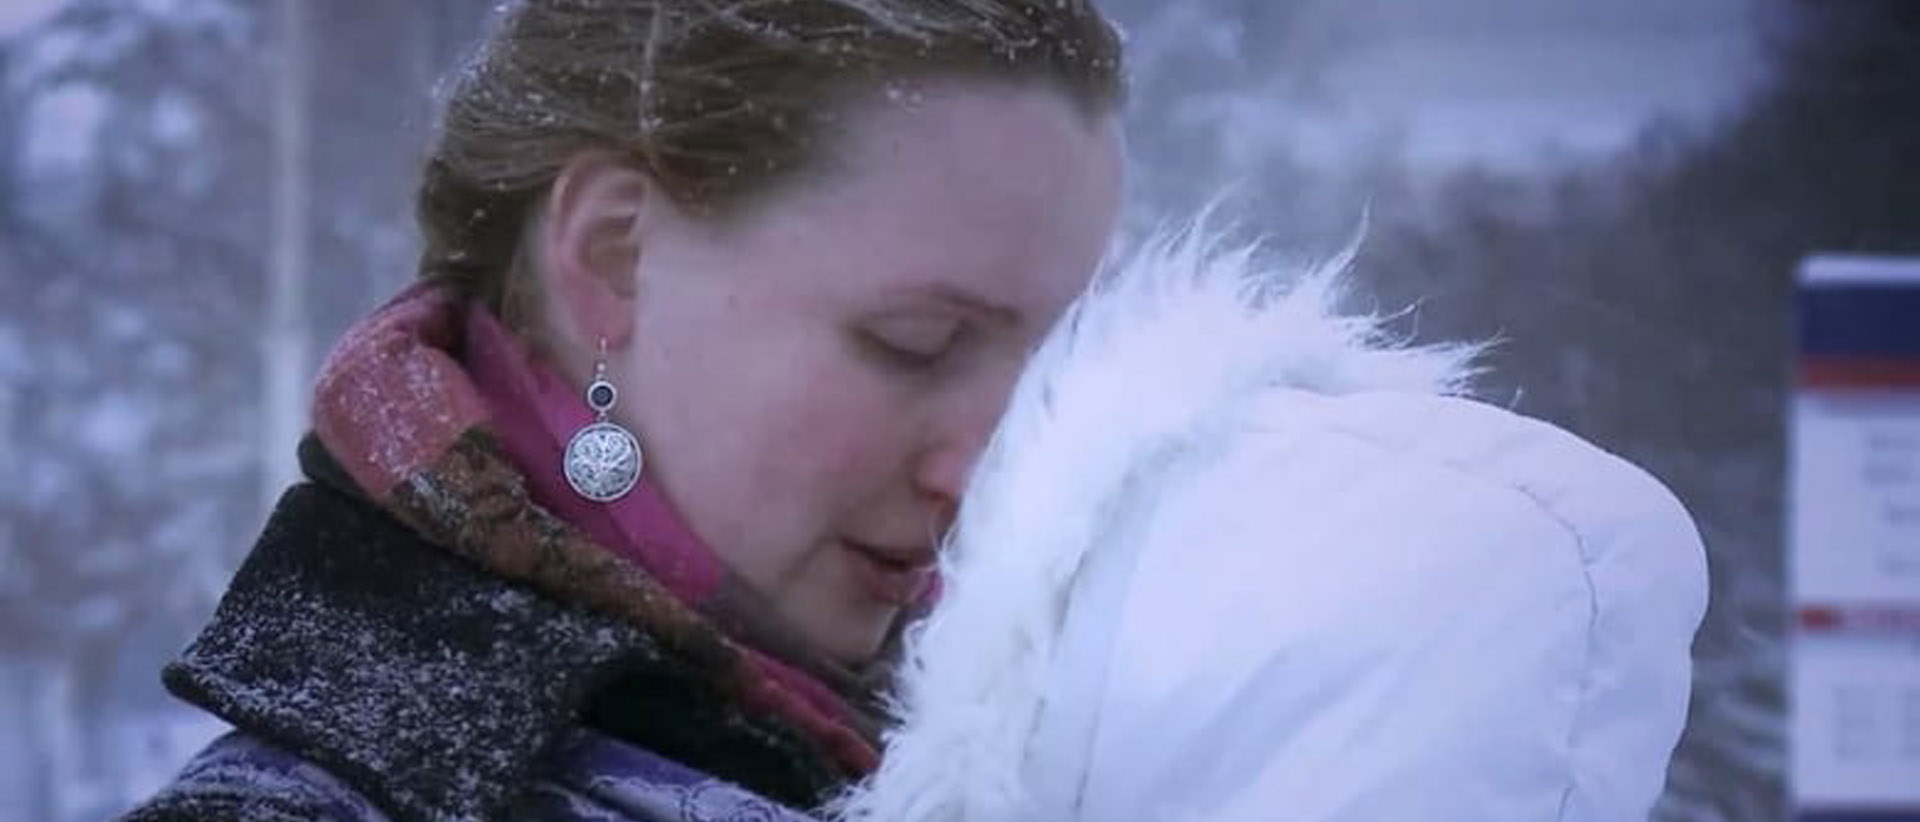 A mother looks at her baby in the snow in the documentary Intro